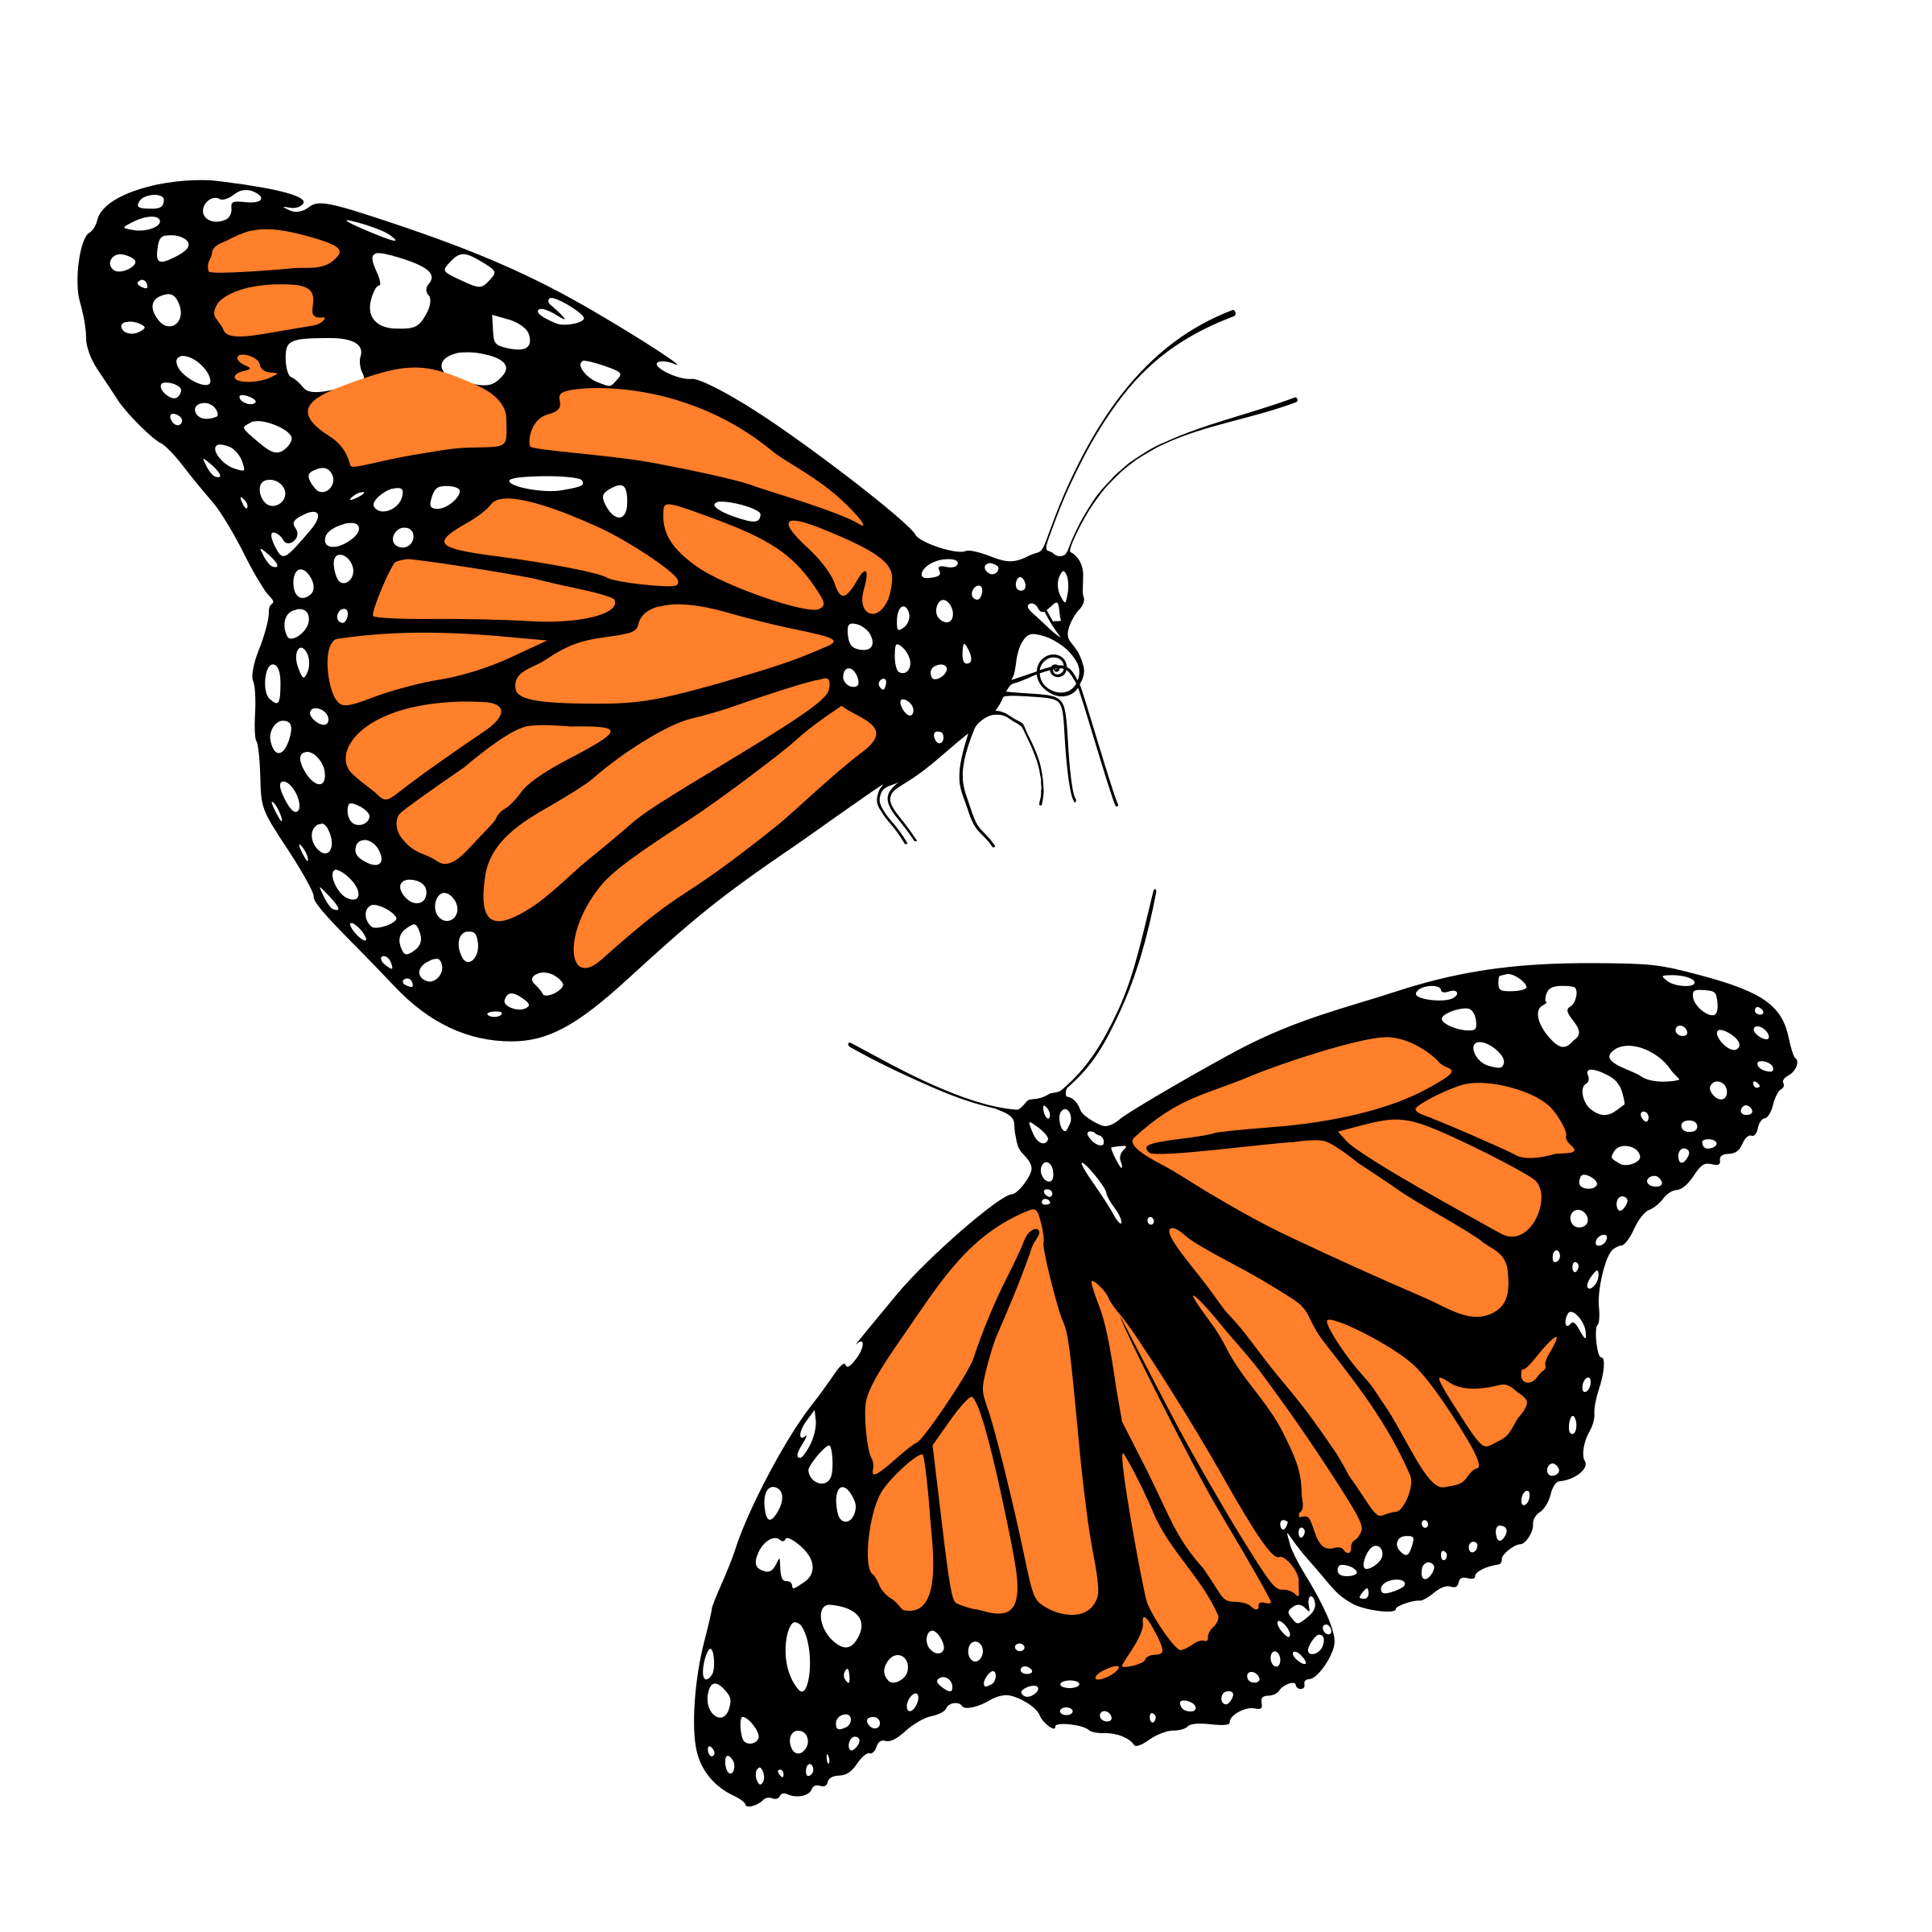 Cave clipart coloring page. Monarch butterfly with background